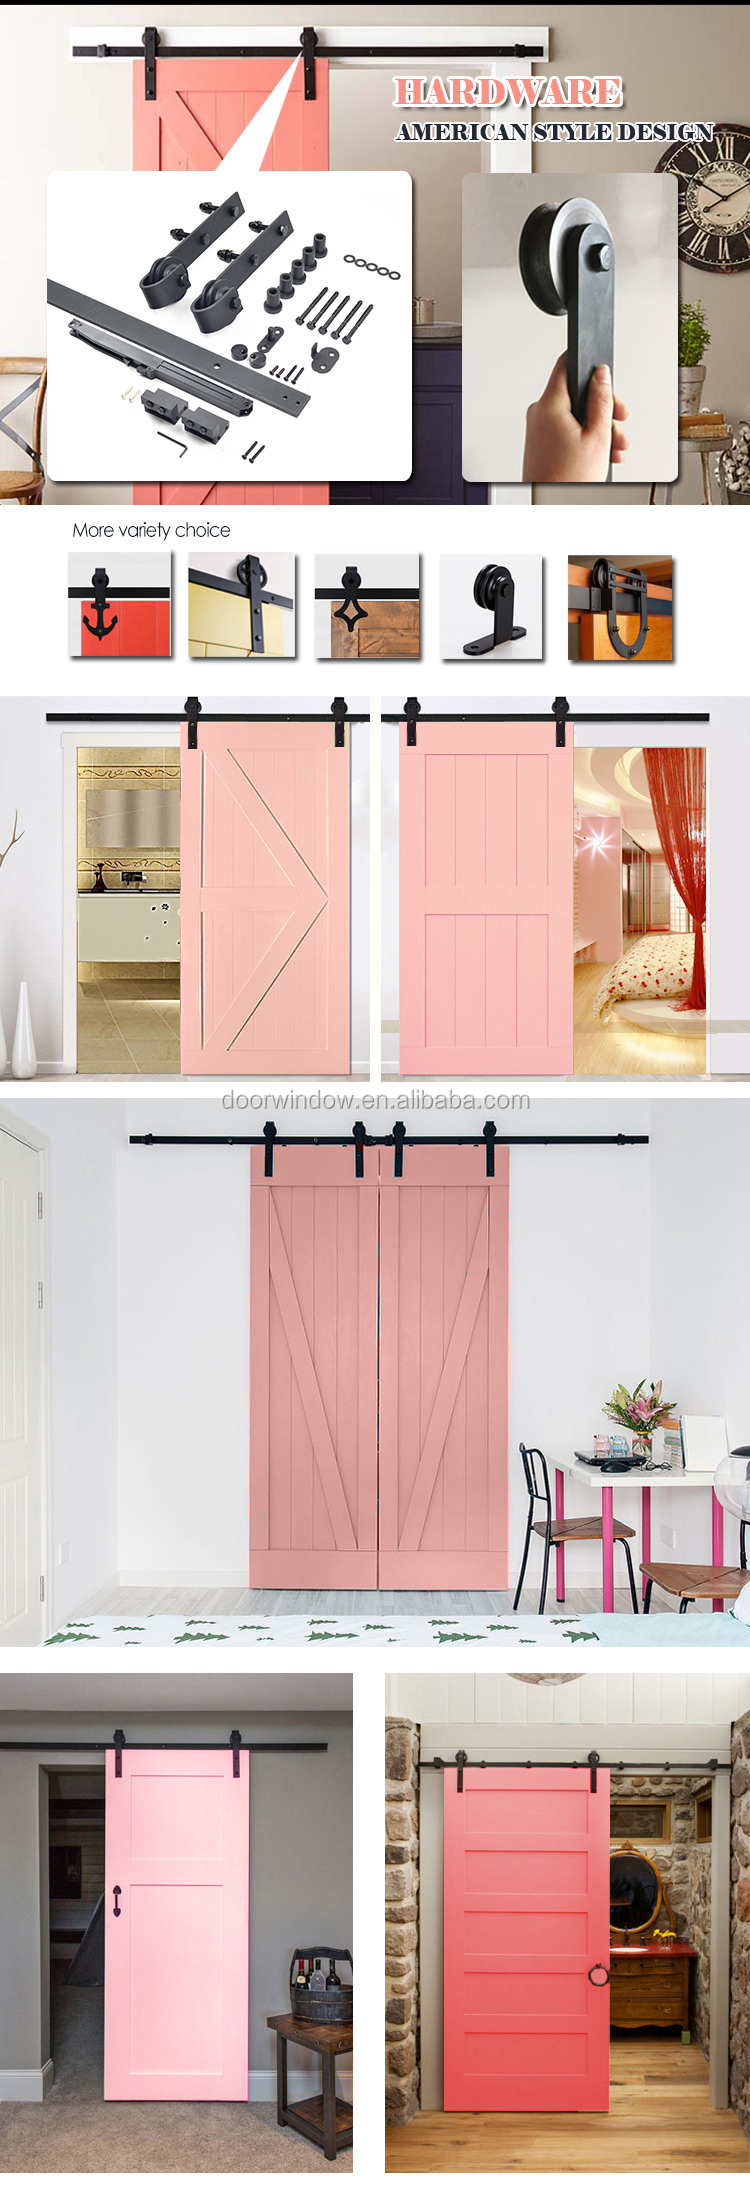 Fashion Design pink paint color pine larch cherry wood High Quality Wooden Fairy sliding barn Door